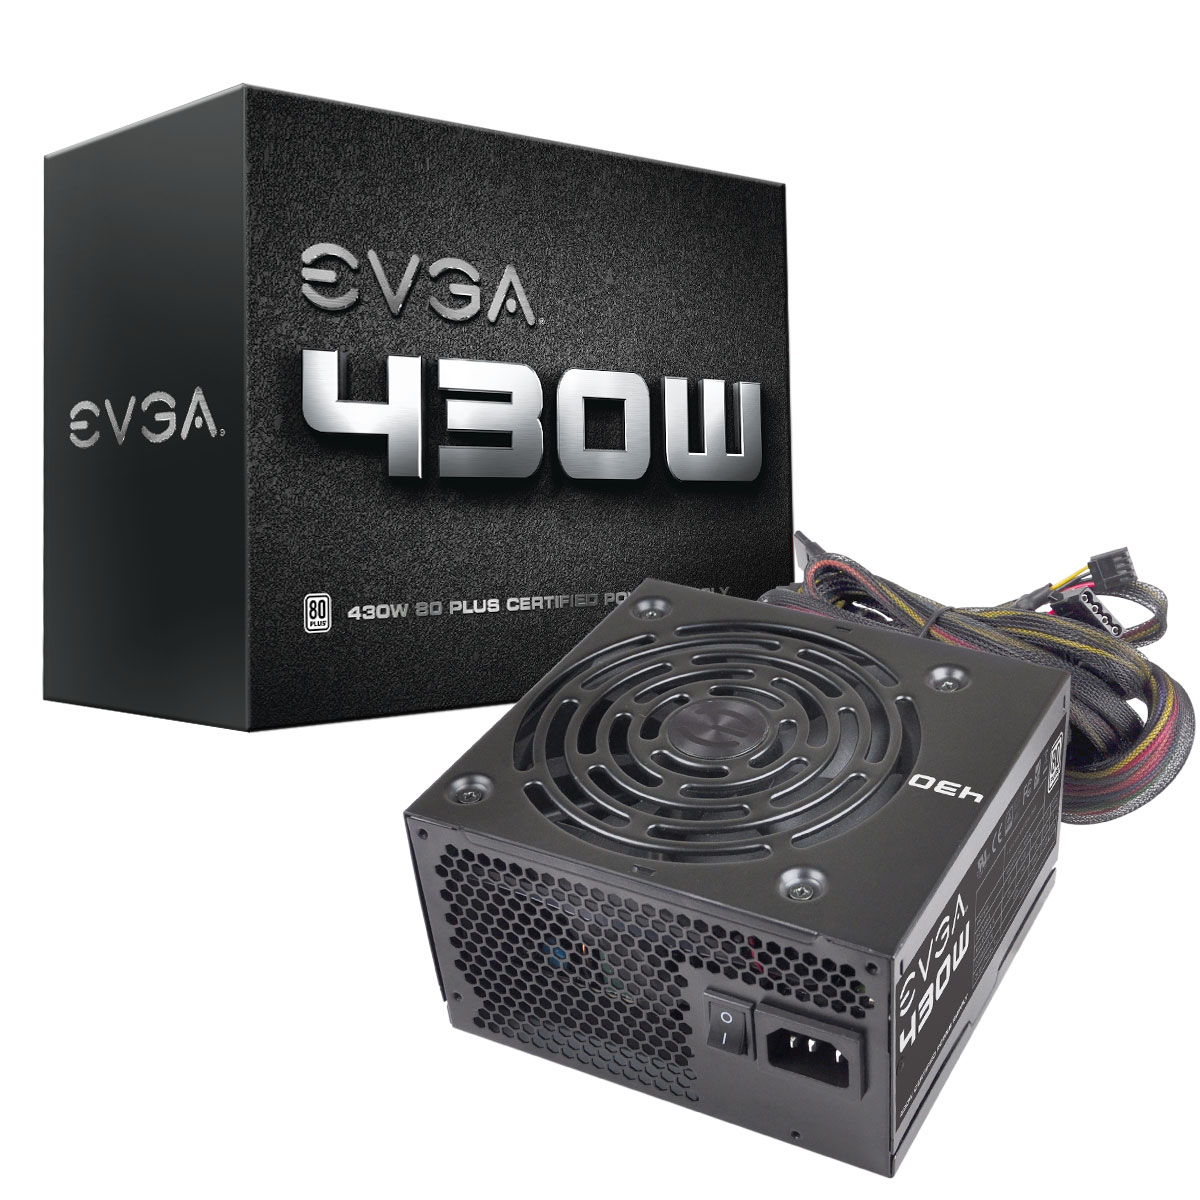 EVGA 430W Desktop Power Supply